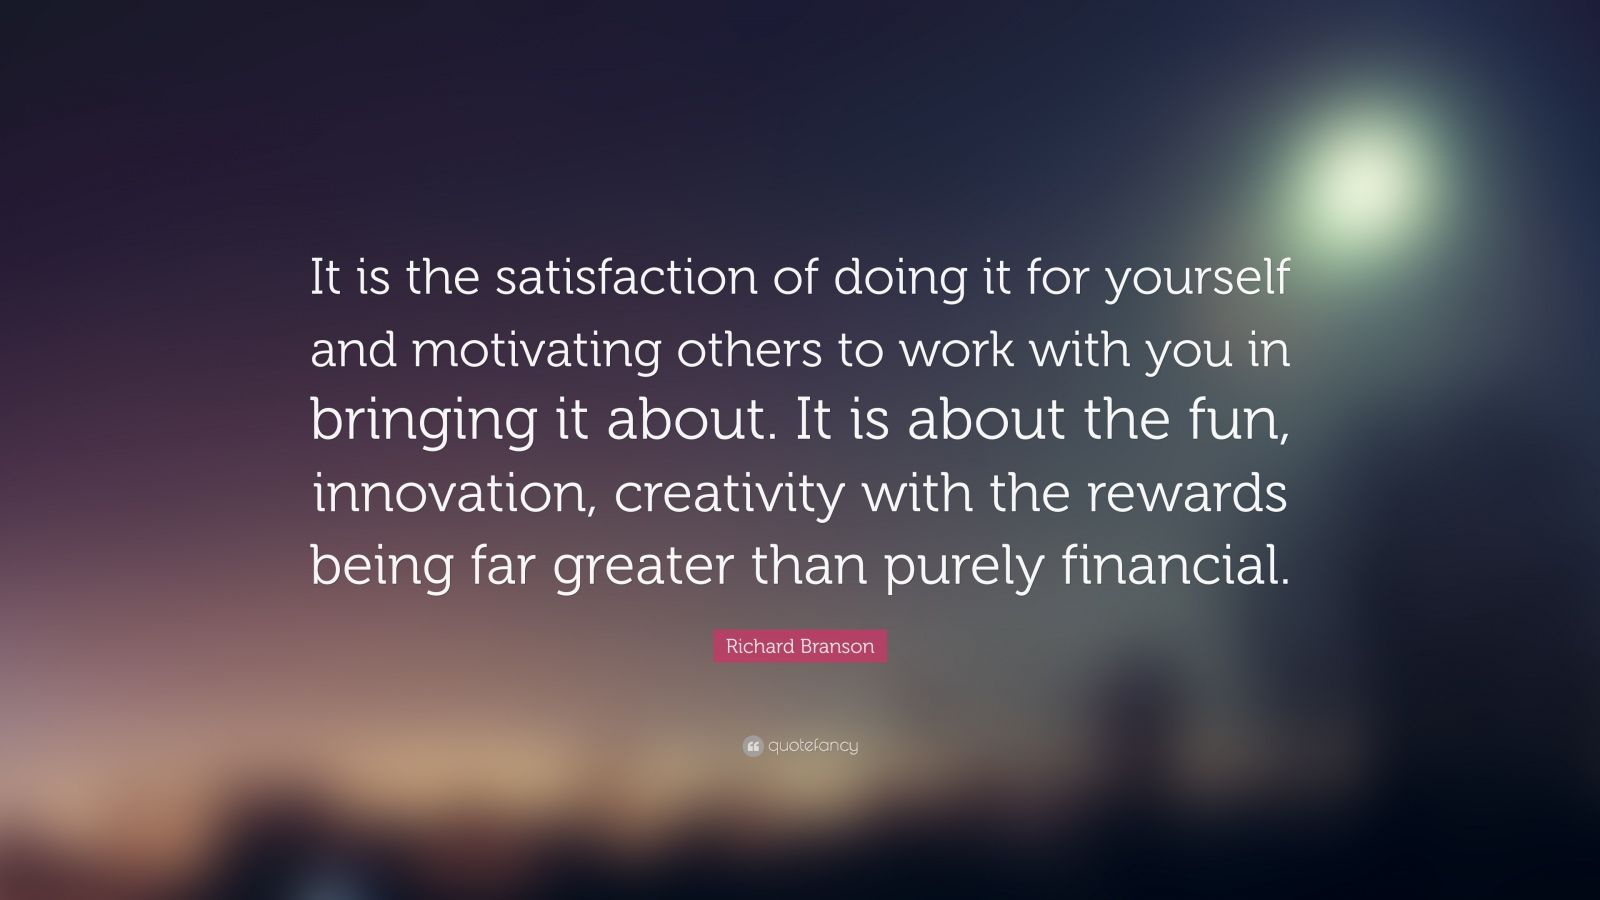 """Richard Branson Quote: """"It is the satisfaction of doing it for yourself and motivating others to work with you in bringing it about. It is about the fun, innovation, creativity with the rewards being far greater than purely financial."""""""